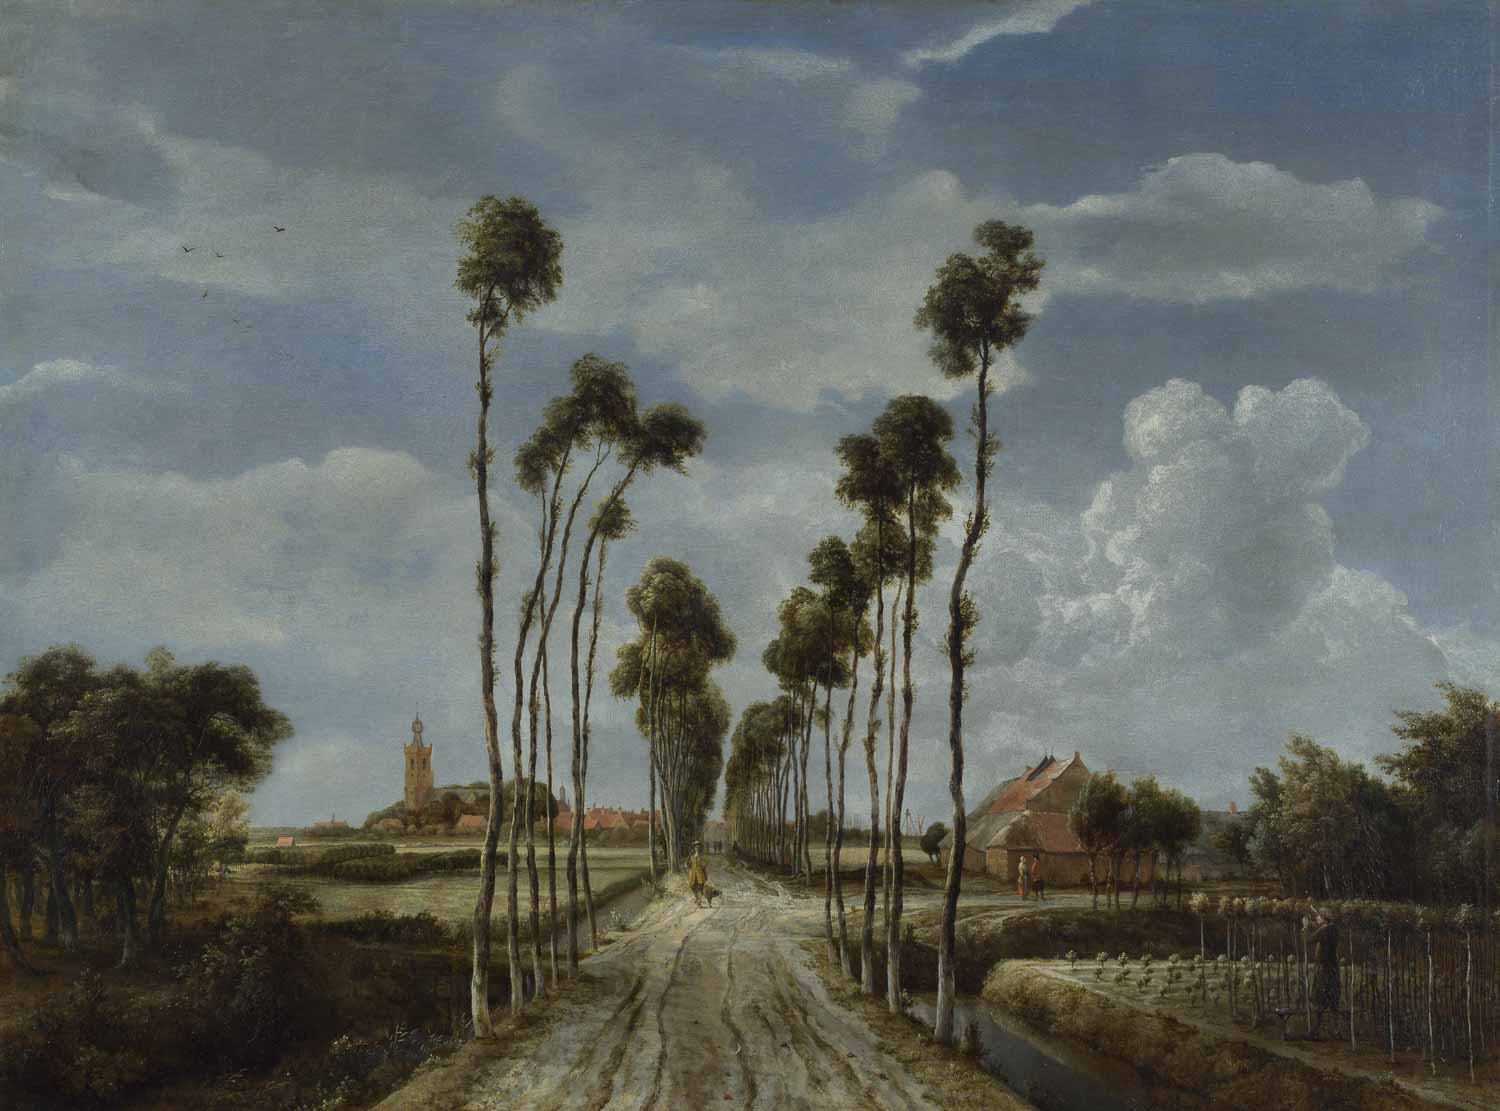 Meindert Hobbema, The Avenue at Middelharnis, National Gallery London